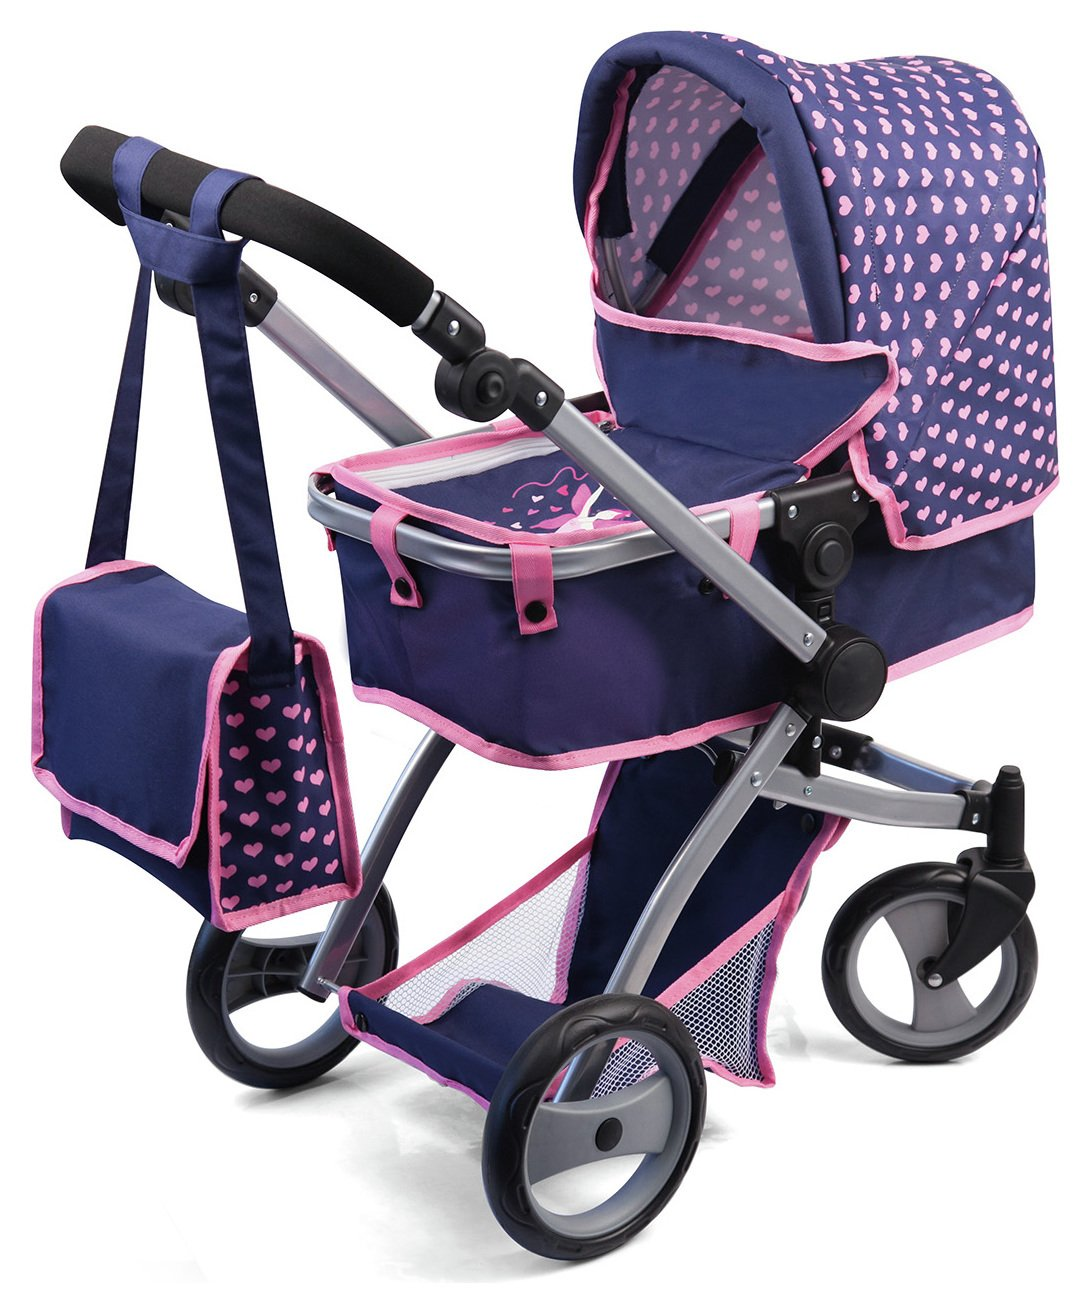 Image of Bayer - Deluxe Combi Dolls Pram